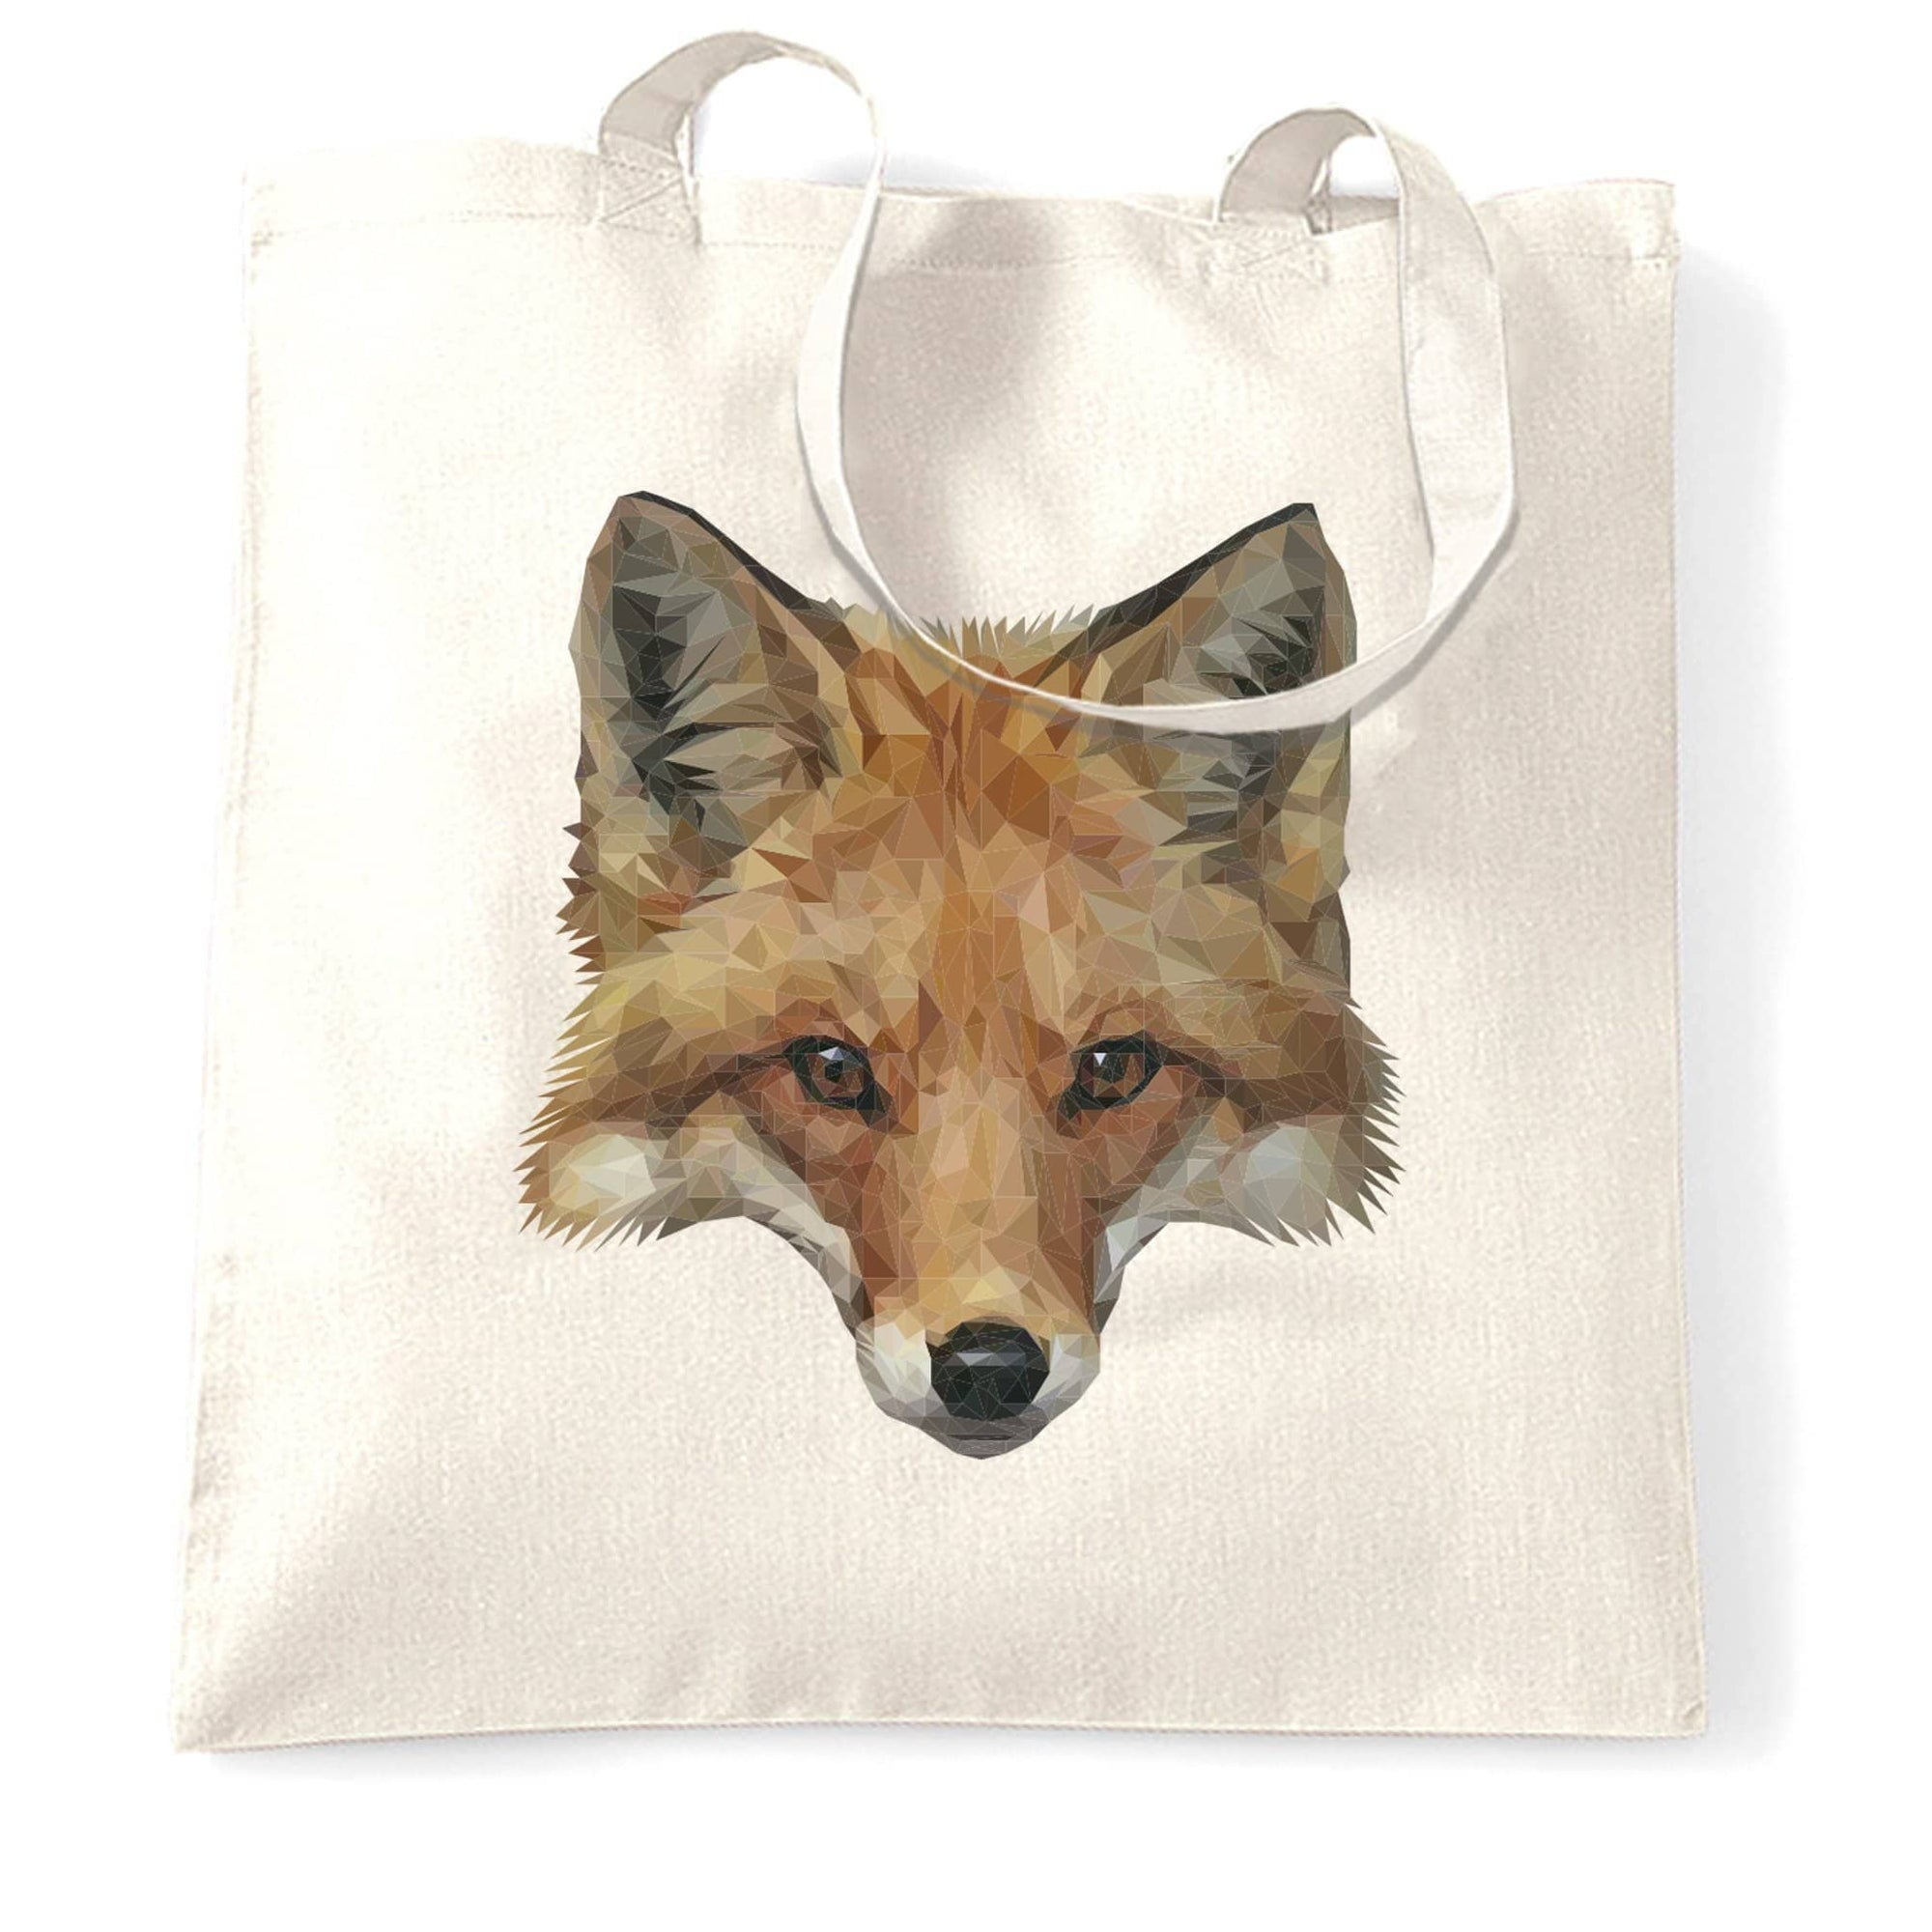 Animal Art Tote Bag Low Poly Fox Graphic